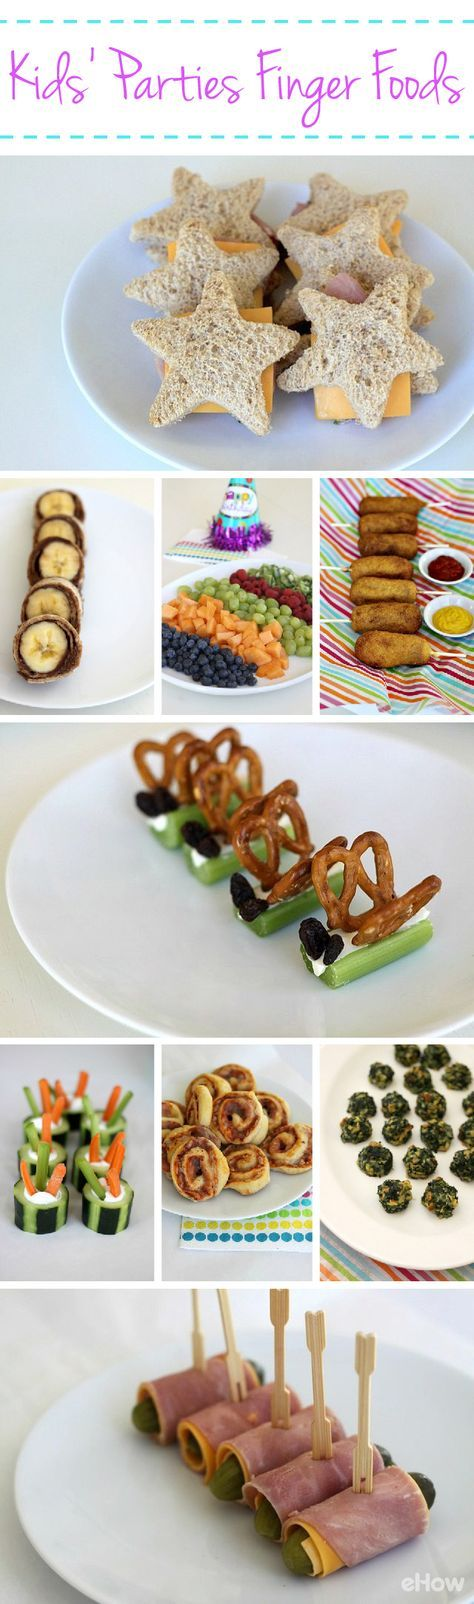 Kids will love these easy finger foods at every party! Nutella banana wraps (a.k.a banana-nutella sushi), mini corn dogs, star cheese and ham sandwiches, and pickle roll-ups. More ideas here: http://www.ehow.com/facts_5175954_finger-foods-kids_-parties.html?utm_source=pinterest.com&utm_medium=referral&utm_content=freestyle&utm_campaign=fanpage